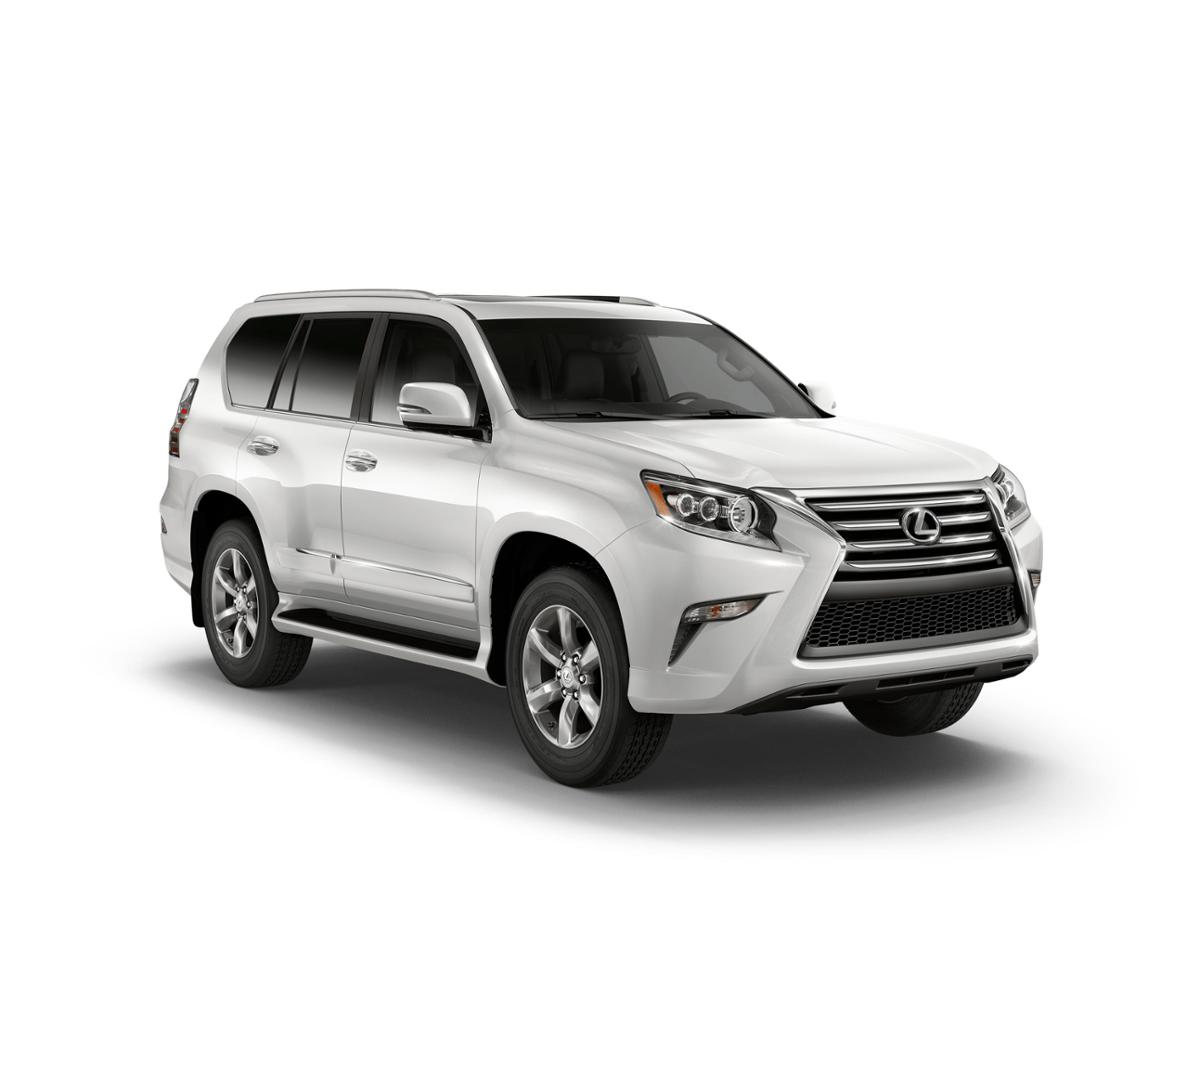 2018 Lexus GX 460 Vehicle Photo in Portland, ME 04103